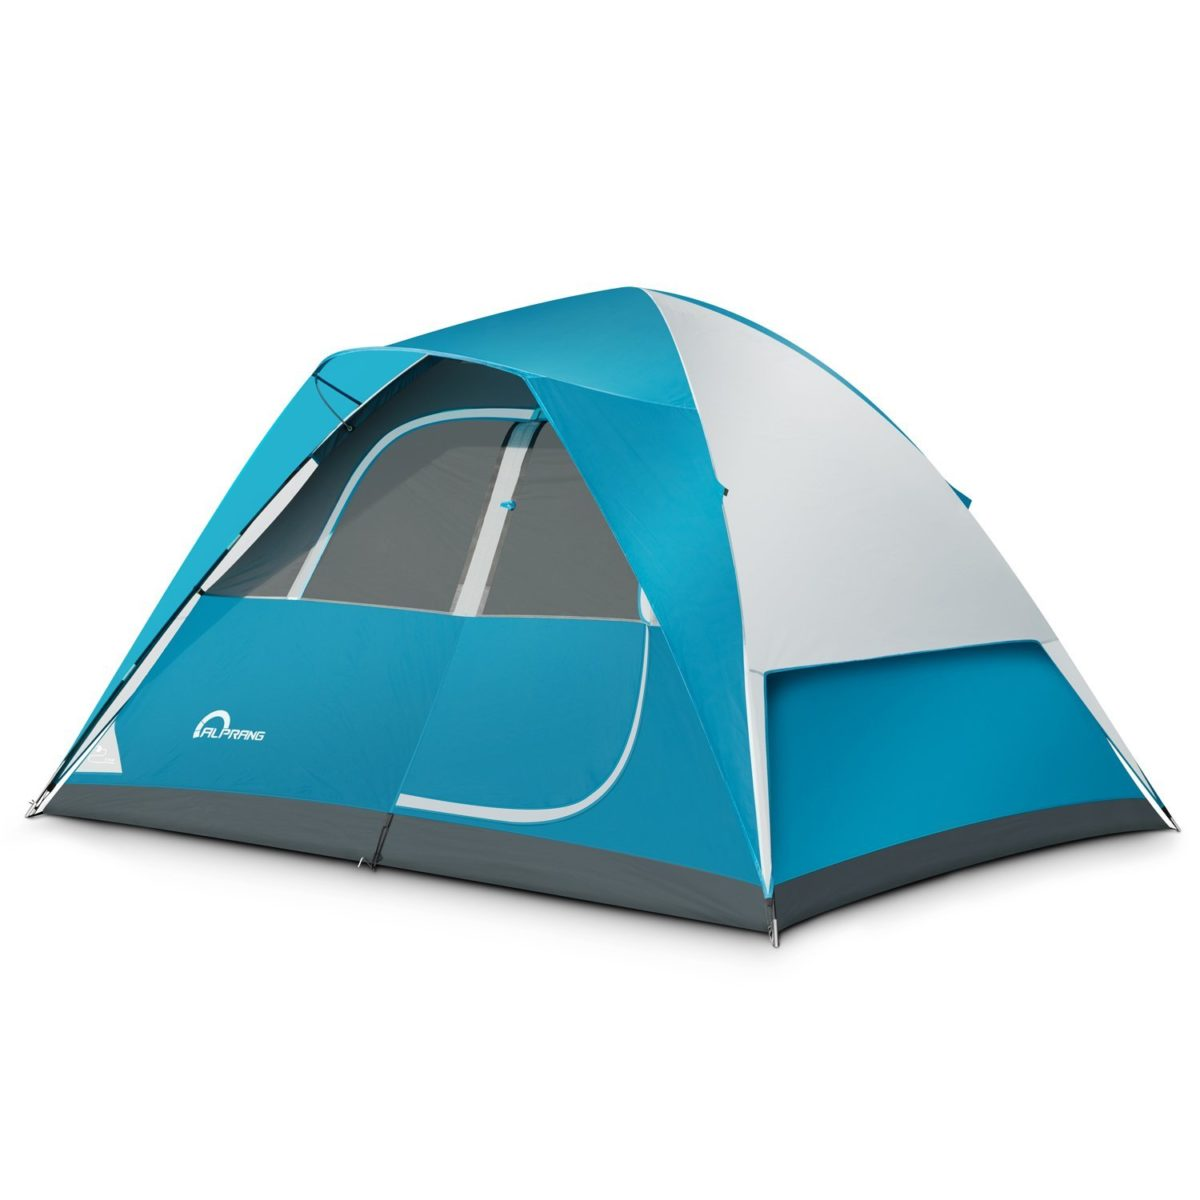 Alprang 6 Person Dome Camping Tent